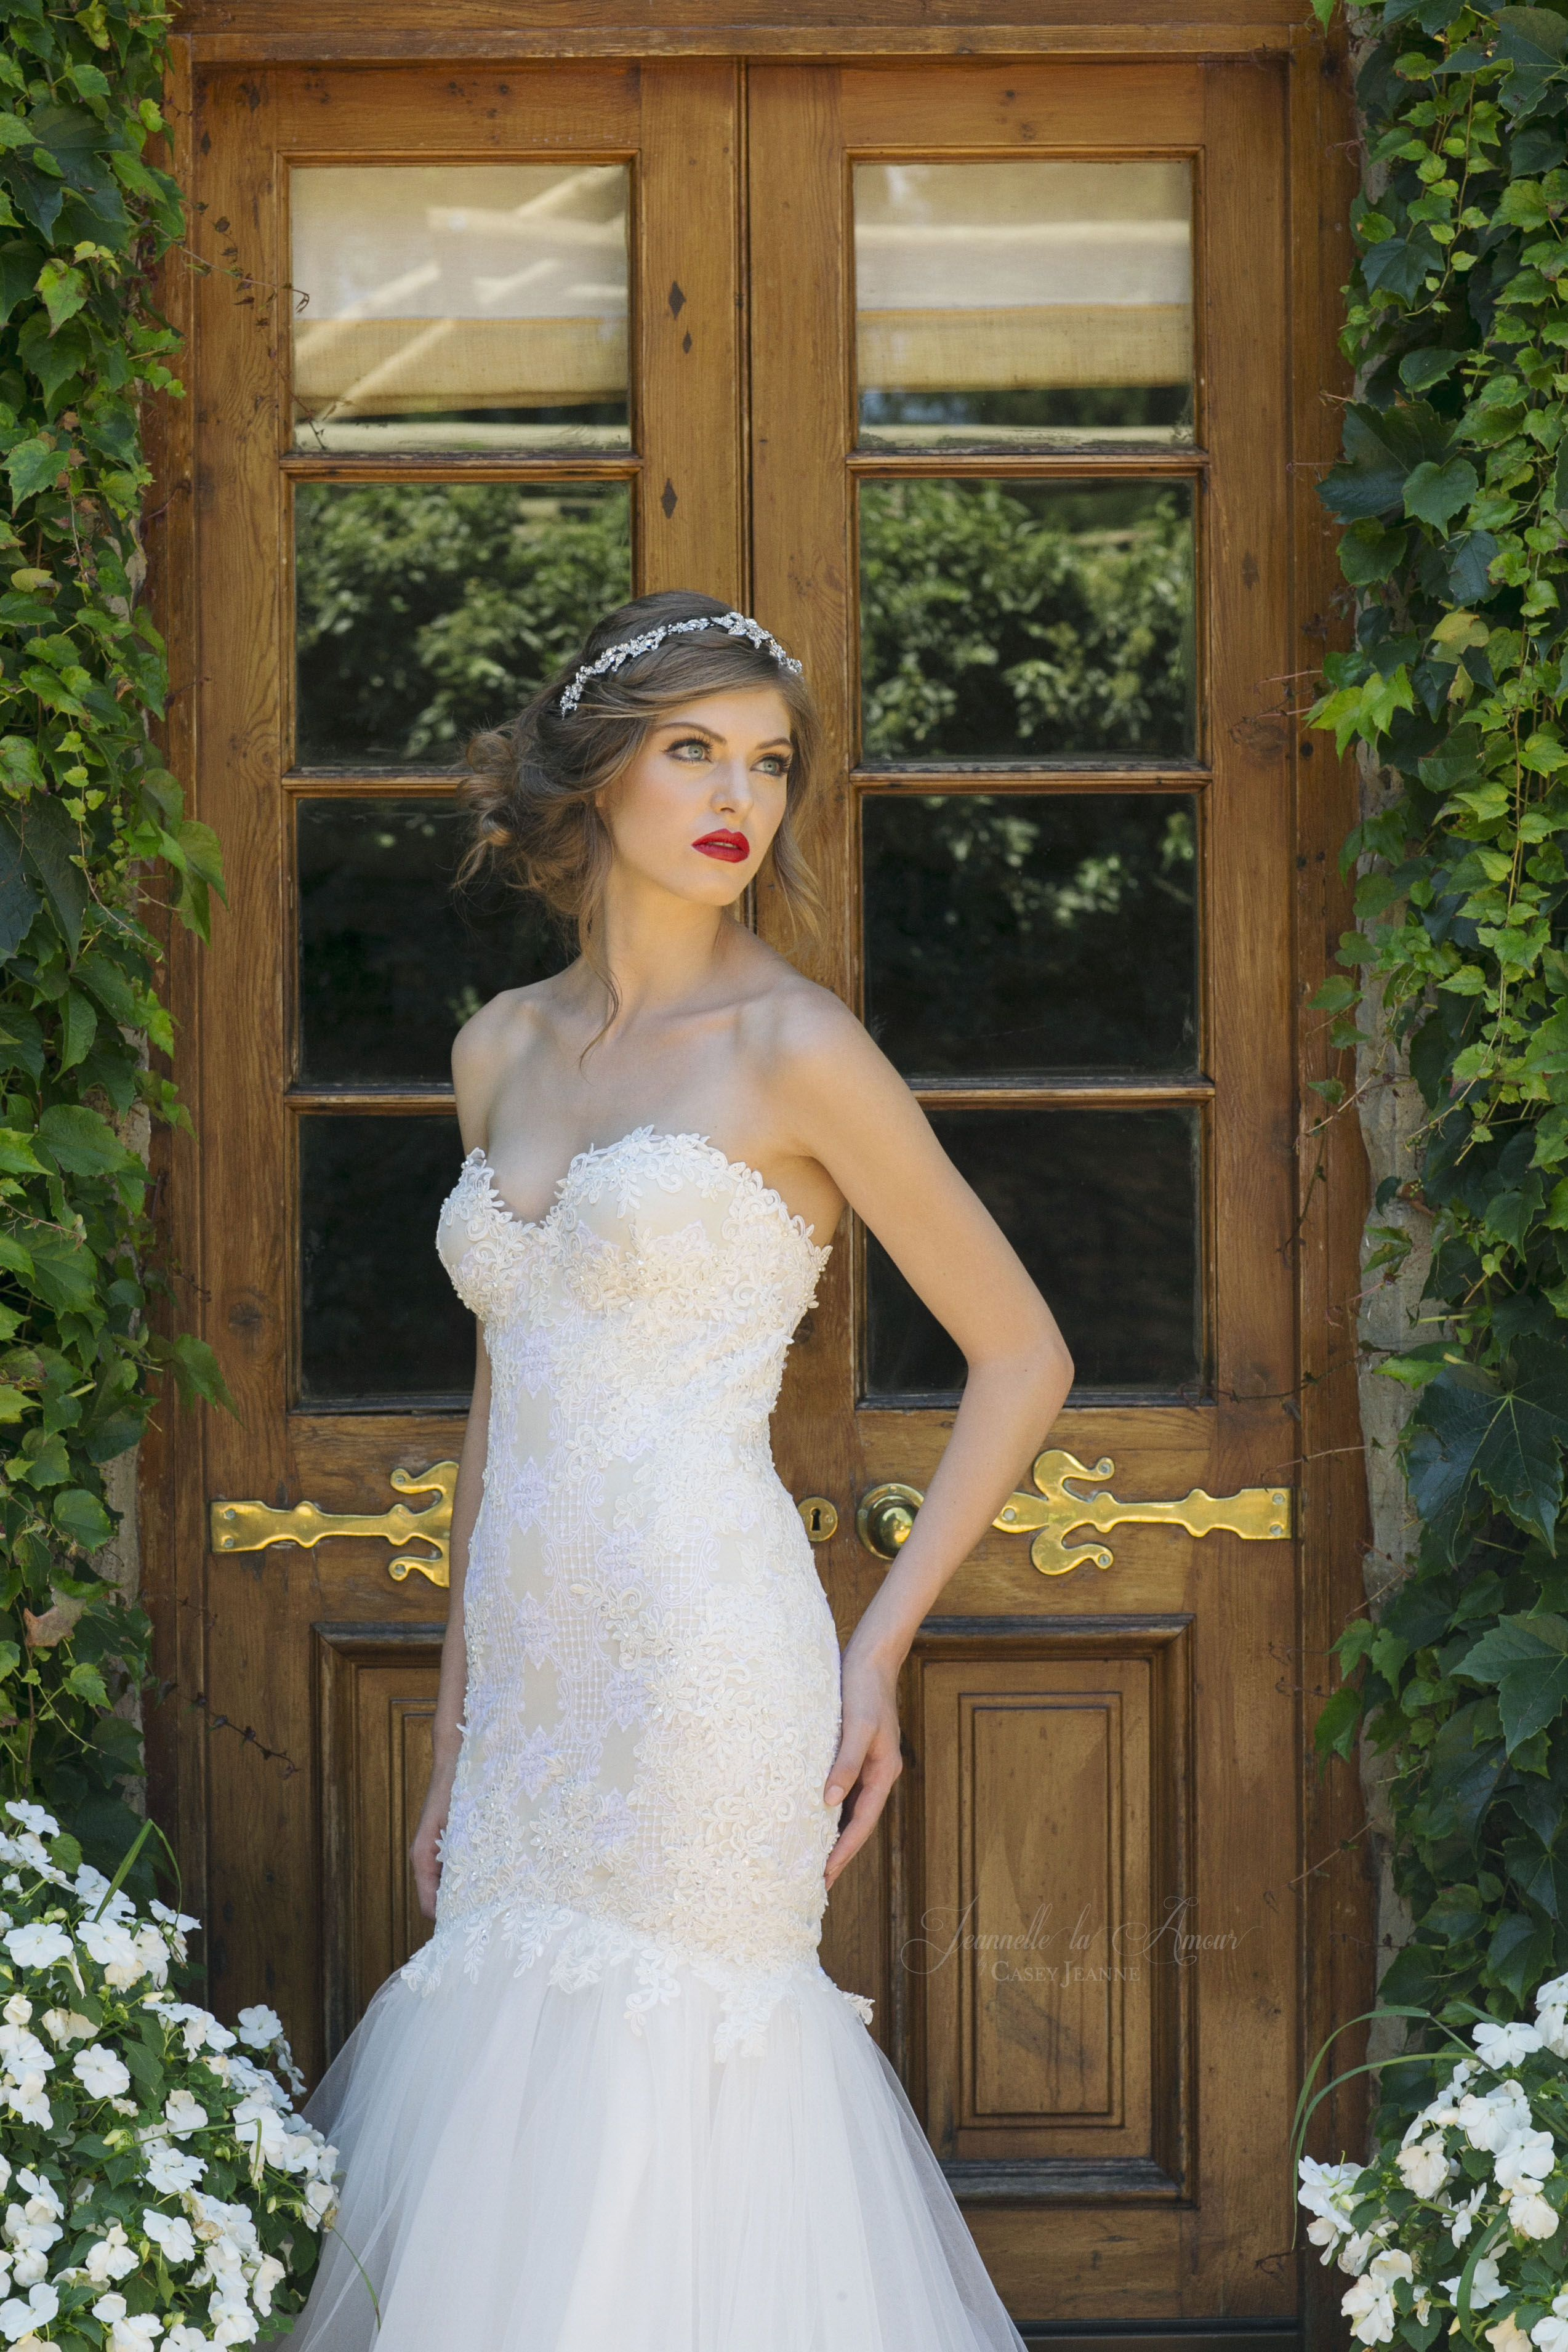 House of brides wedding dresses  Bridal Gown